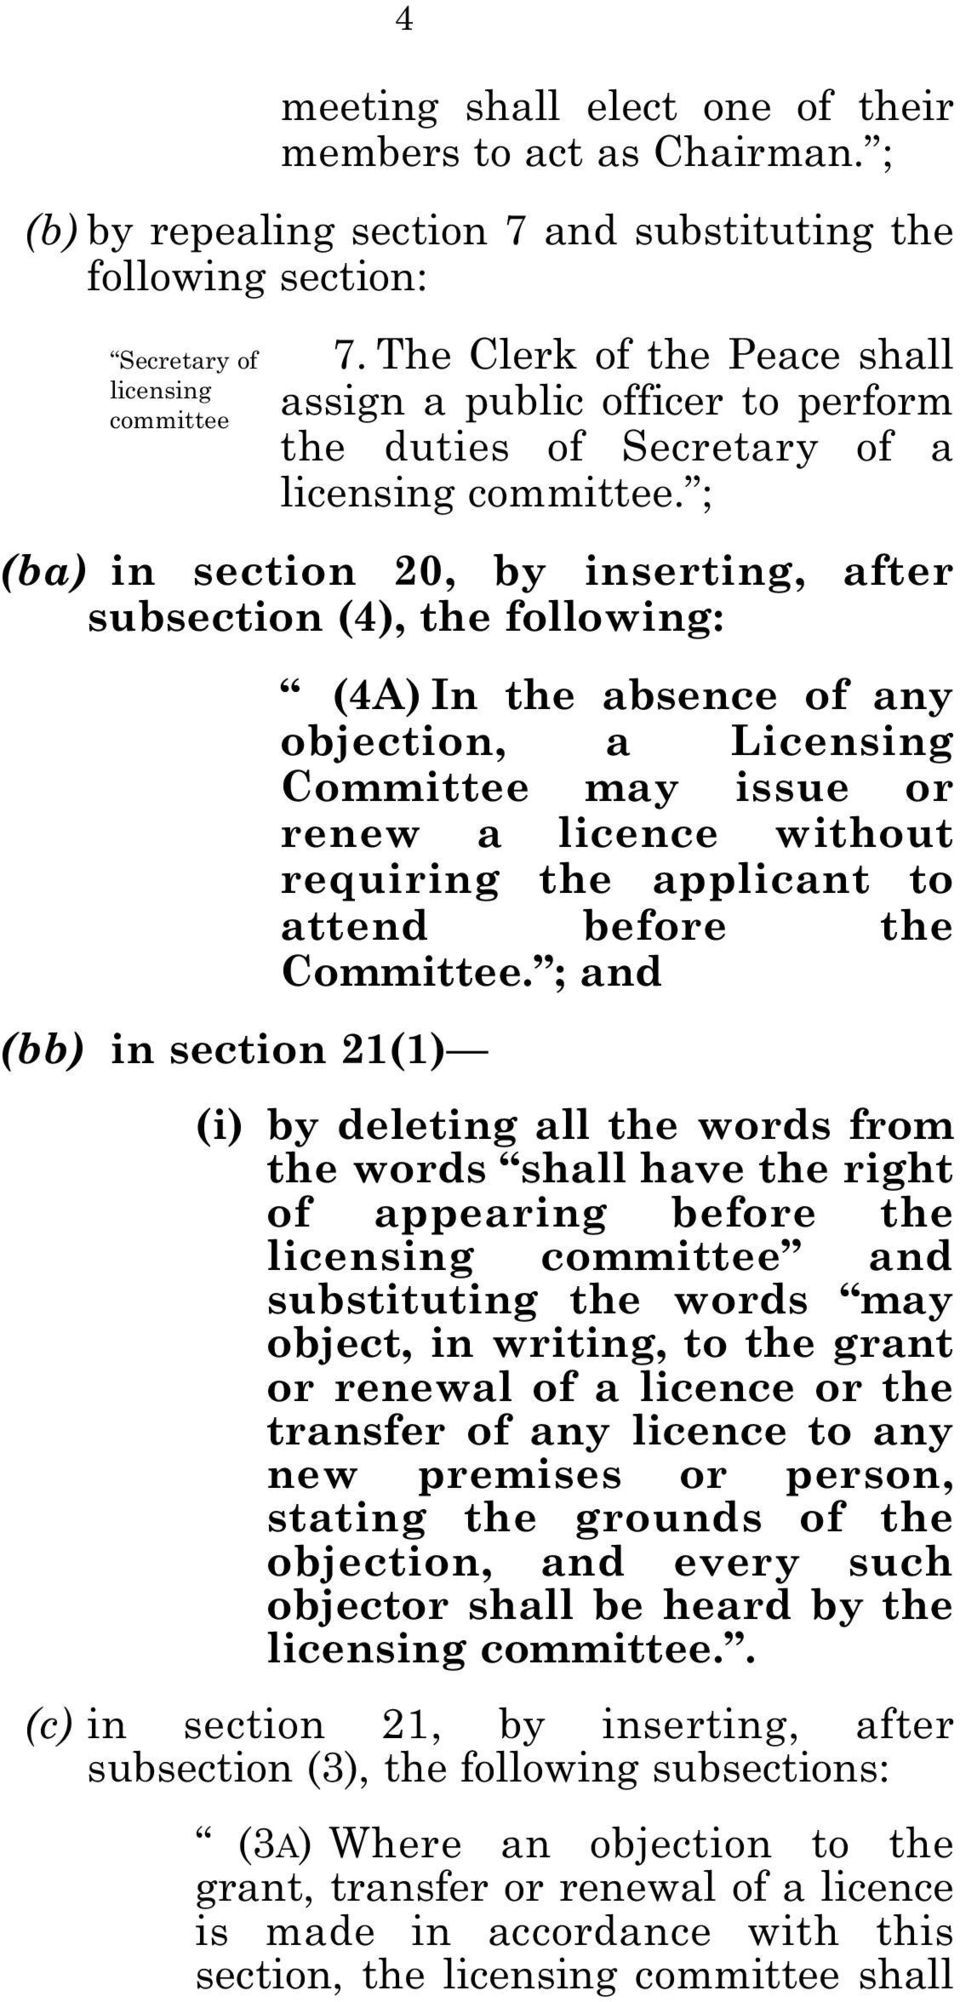 ; (ba) in section 20, by inserting, after subsection (4), the following: (bb) in section 21(1) 4 (4A) In the absence of any objection, a Licensing Committee may issue or renew a licence without